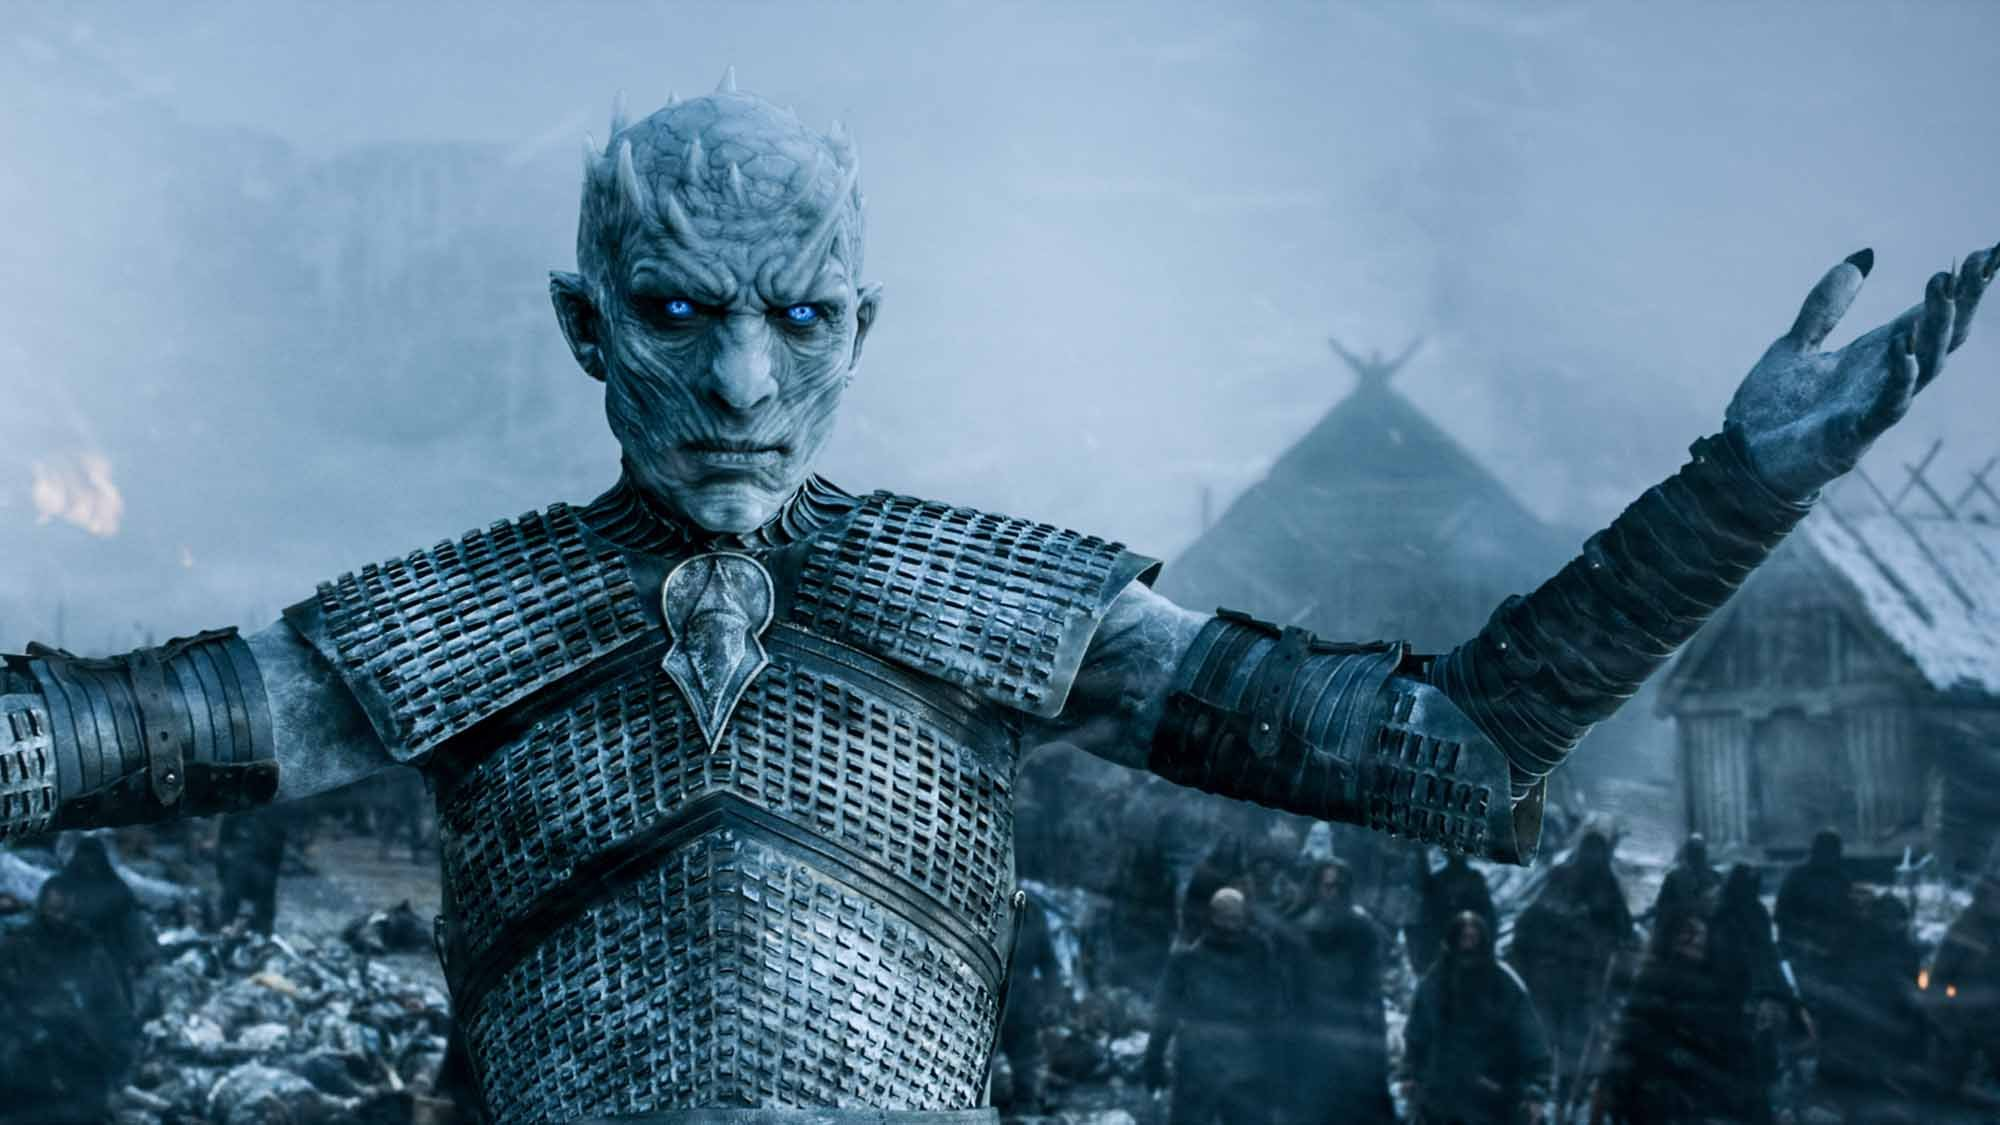 night-king-white-walker-hardhome-game-of-thrones-hbo-jpeg